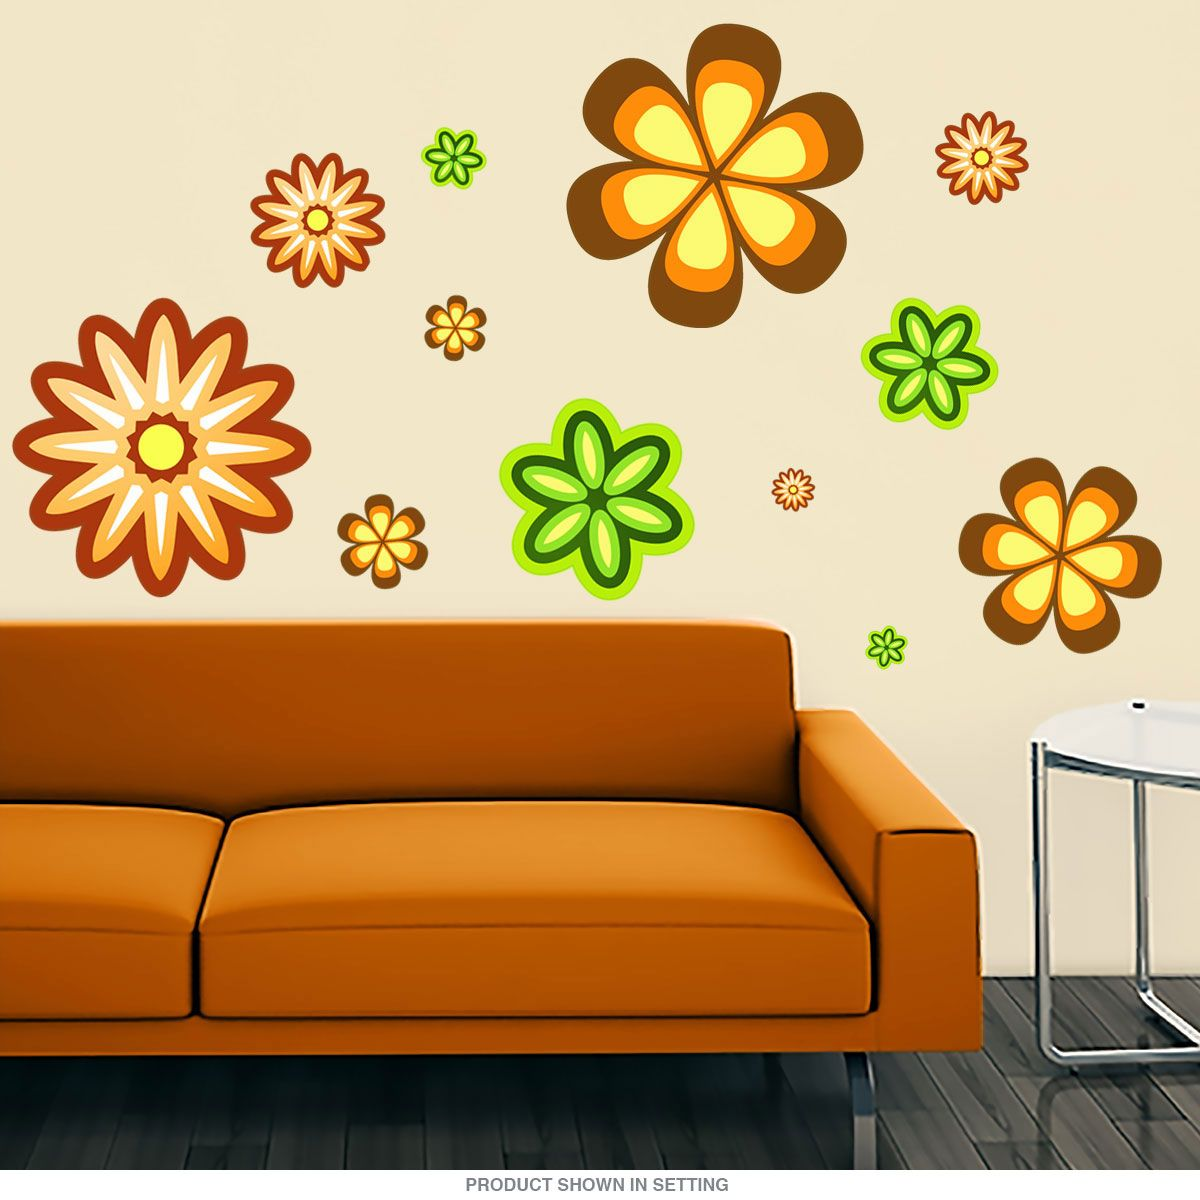 Floral vintage wall Decalset printed on matte polyester fabric. Made in USA; sizes range 3